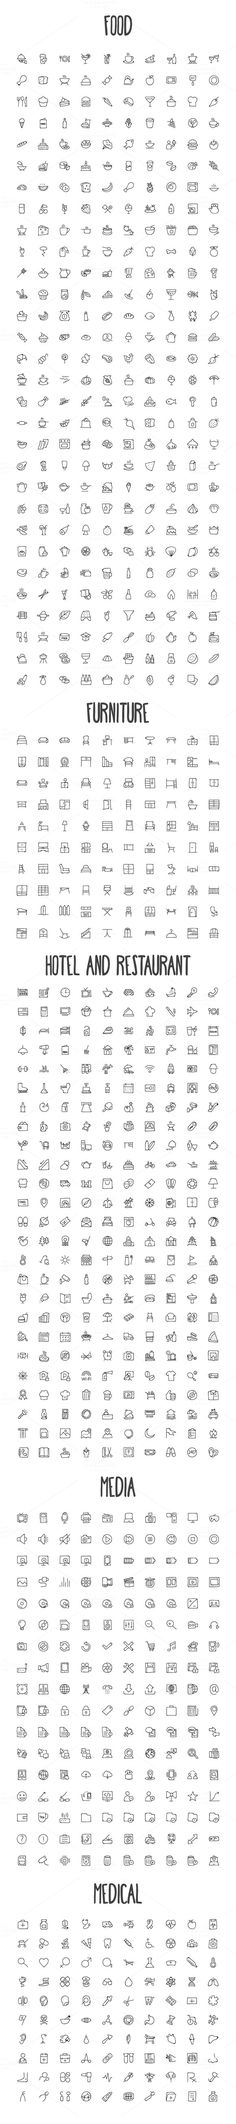 2440 Hand Drawn Doodle Icons Bundle by Creative Stall on Creative Market - Fon. - 2440 Hand Drawn Doodle Icons Bundle by Creative Stall on Creative Market – Fonts - Doodle Drawings, Cute Drawings, Doodle Art, Tattoo Drawings, Zentangle, Sketch Note, Bullet Journal Inspiration, Doodle Inspiration, Drawing Tips